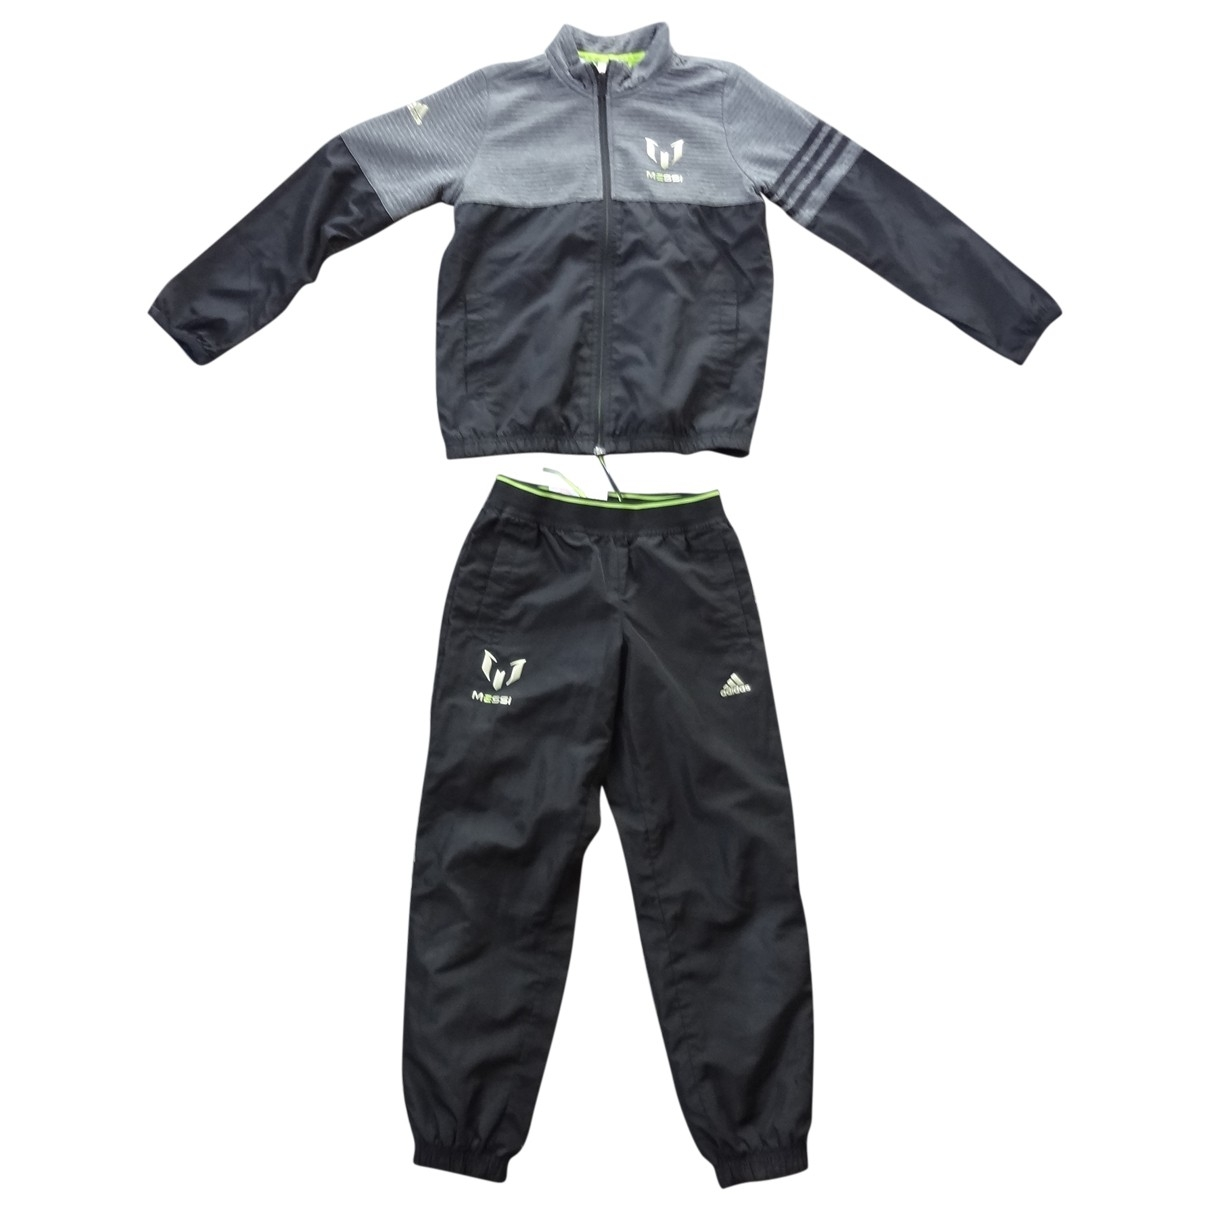 Adidas \N Black Outfits for Kids 10 years - up to 142cm FR